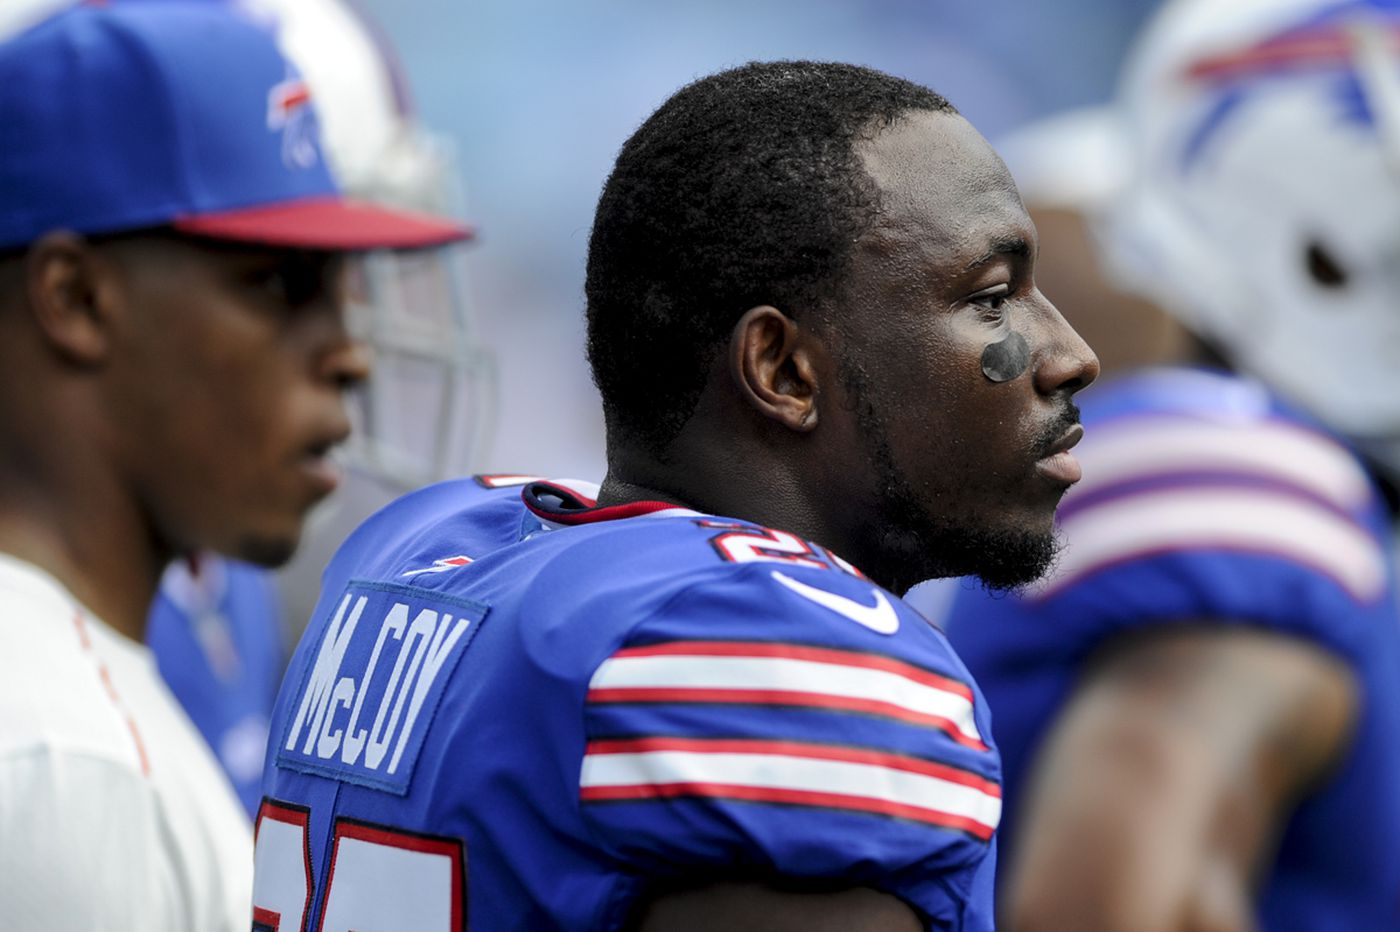 LeSean McCoy domestic abuse allegations: What we know